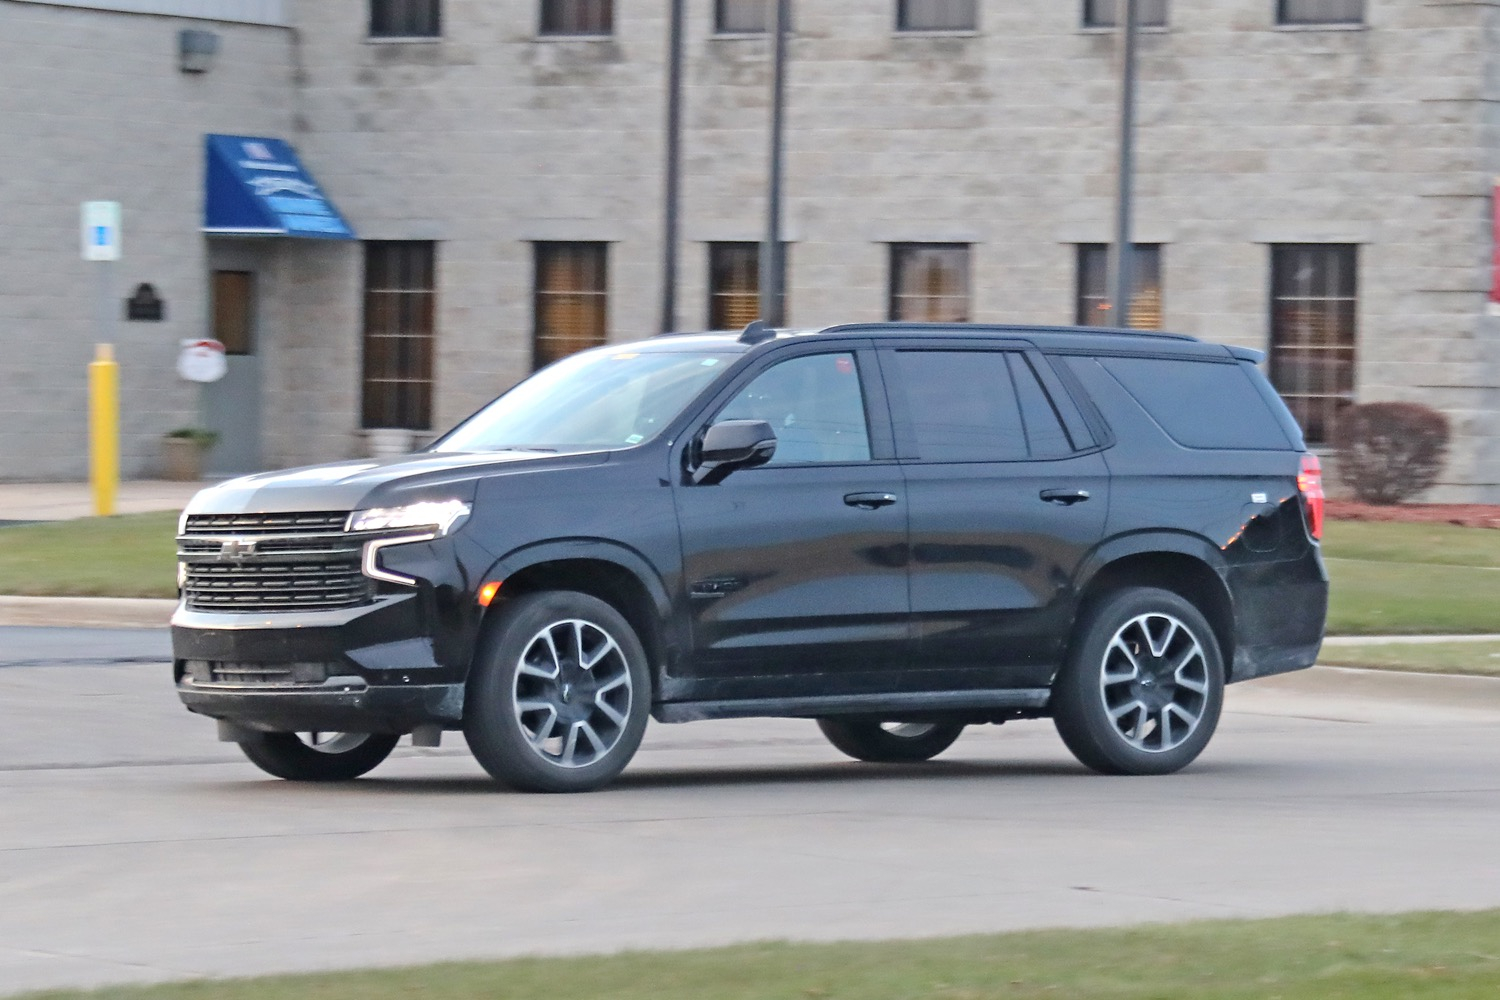 2021 Chevrolet Tahoe Rst On The Street: Live Photo Gallery Build Your Own 2021 Chevy Suburban Wheels, Price, 0-60